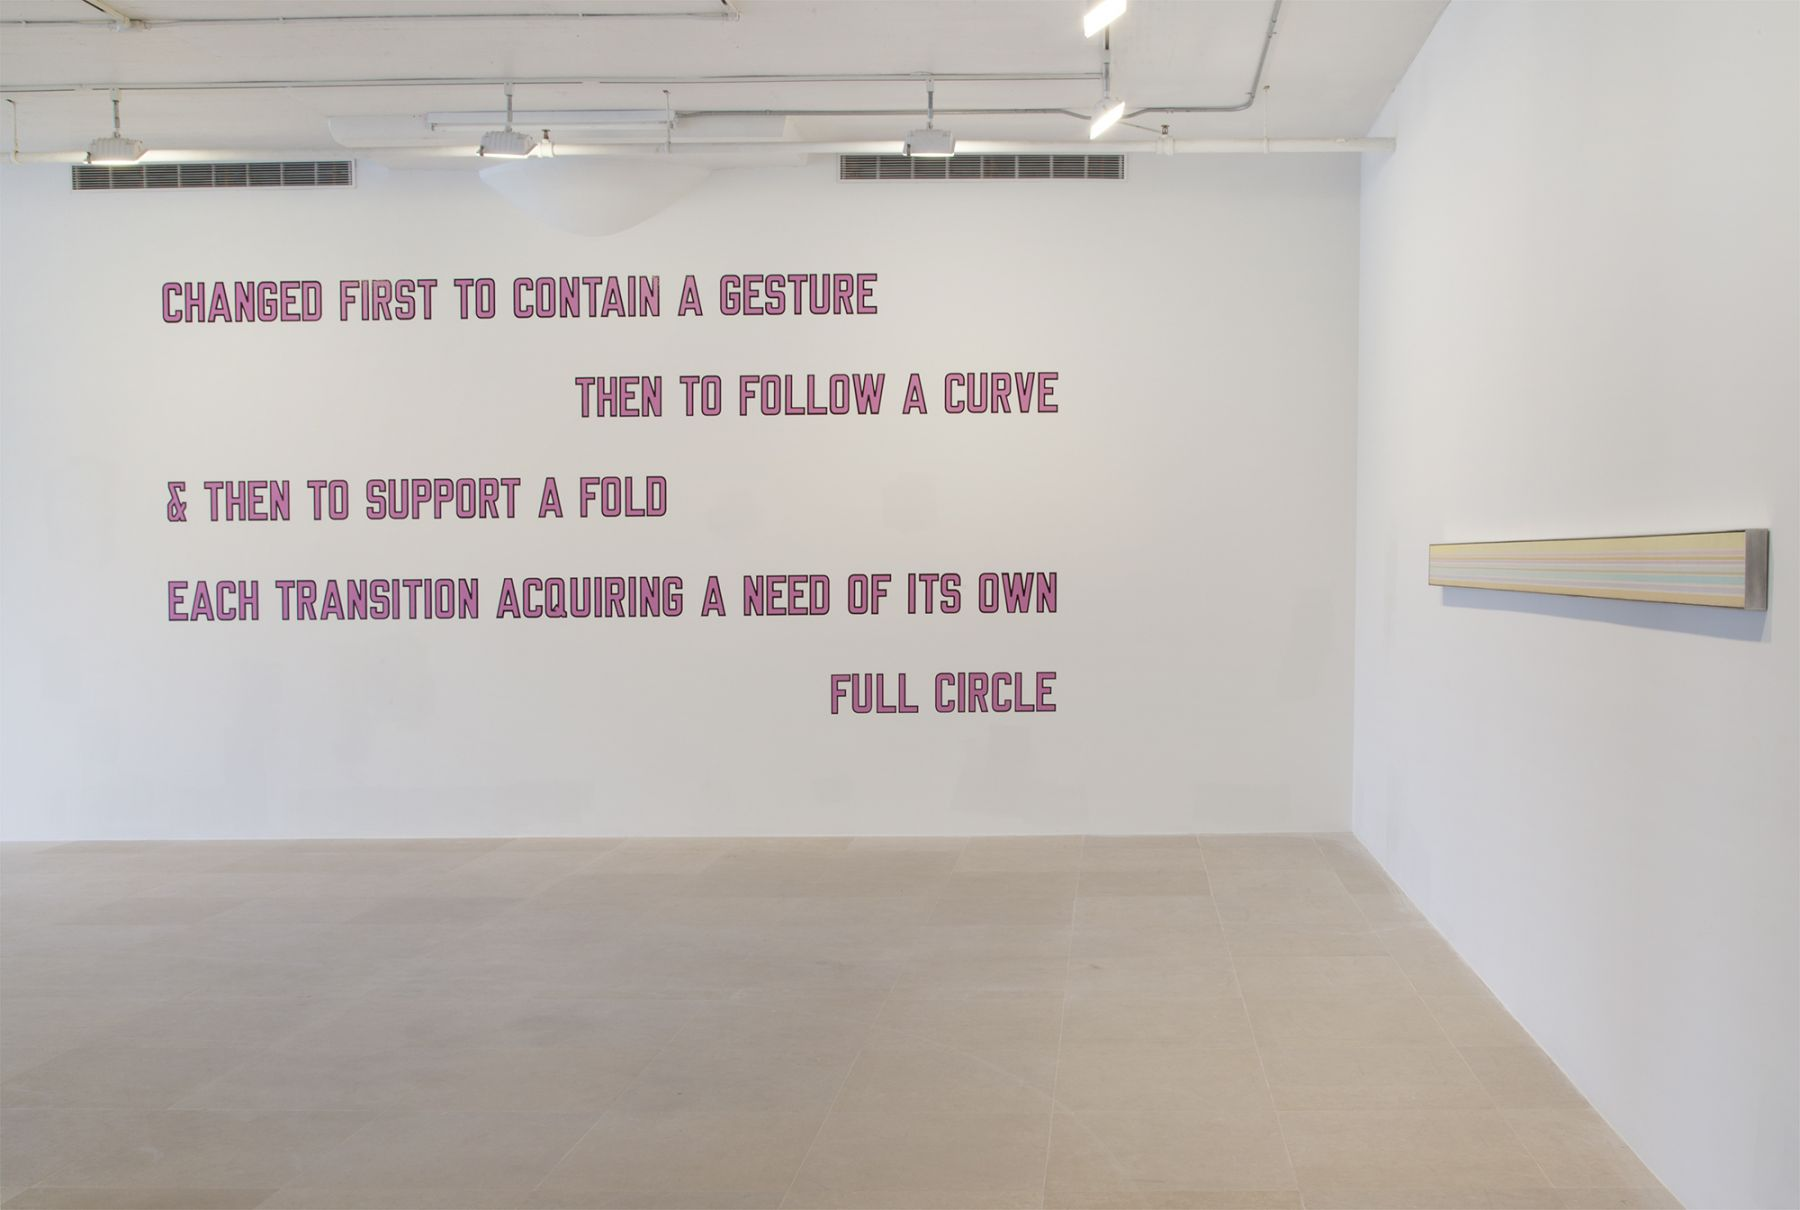 Lawrence Weiner, CHANGED FIRST TO CONTAIN A GESTURE THEN TO FOLLOW A CURVE & THEN TO SUPPORT A FOLD EACH TRANSITION ACQUIRING A NEED OF ITS OWN, FULL CIRCLE, 1999, Language + the materials referred to Dimensions variable